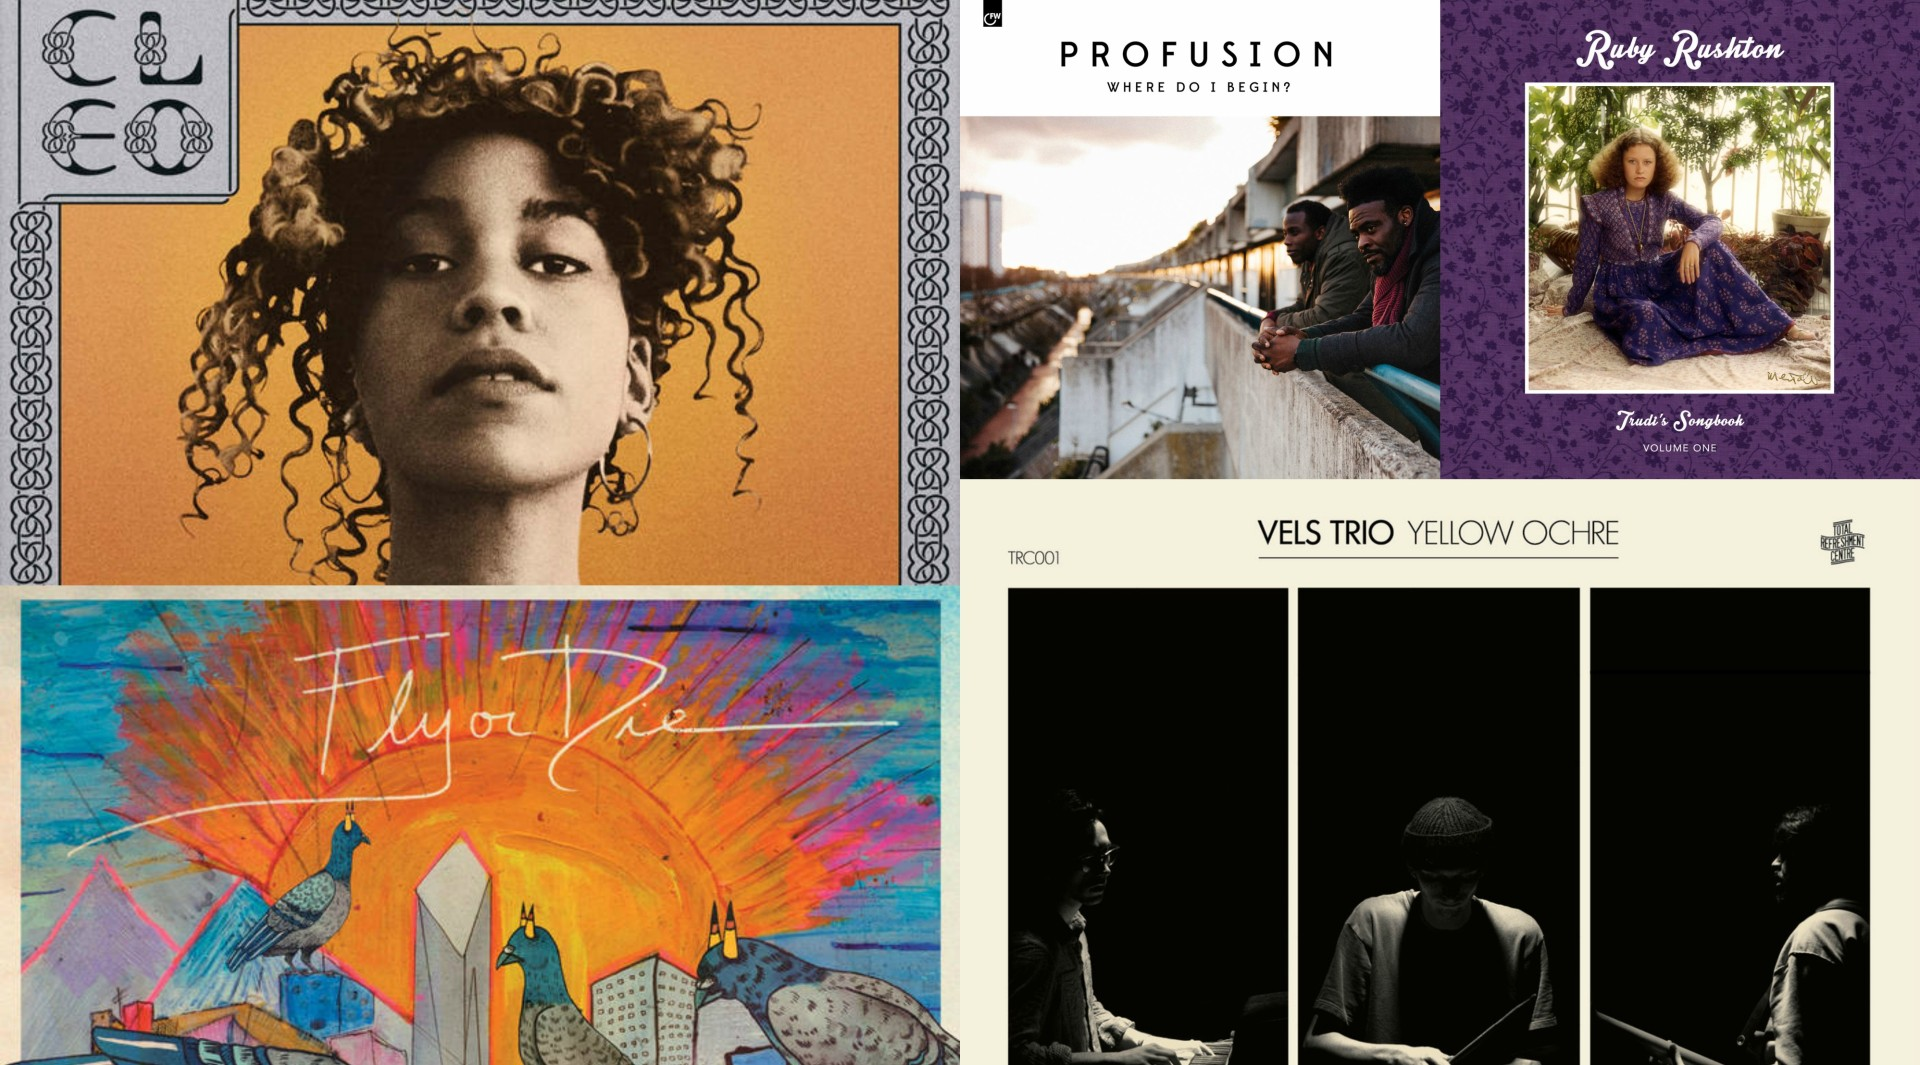 Five albums you need to hear.